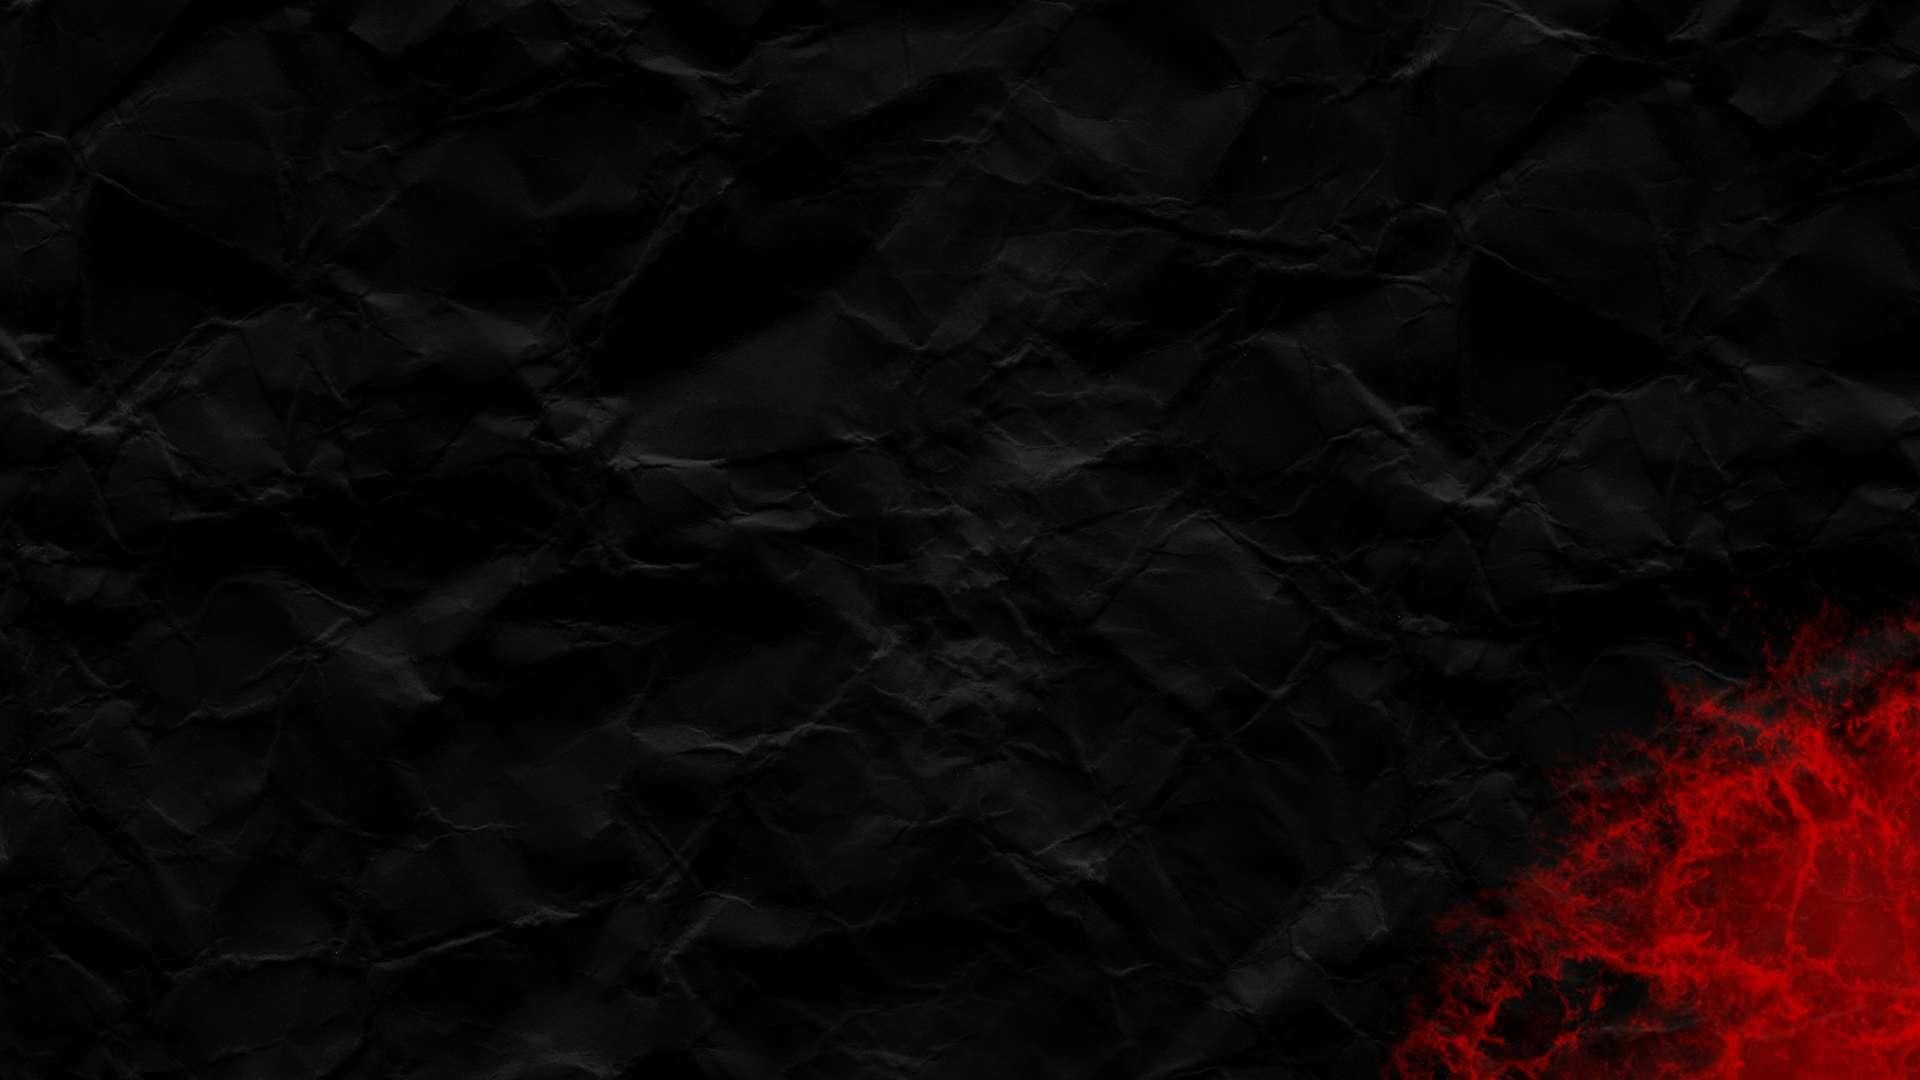 Red And Black Hd Wallpaper 4 Cool Hd Wallpaper